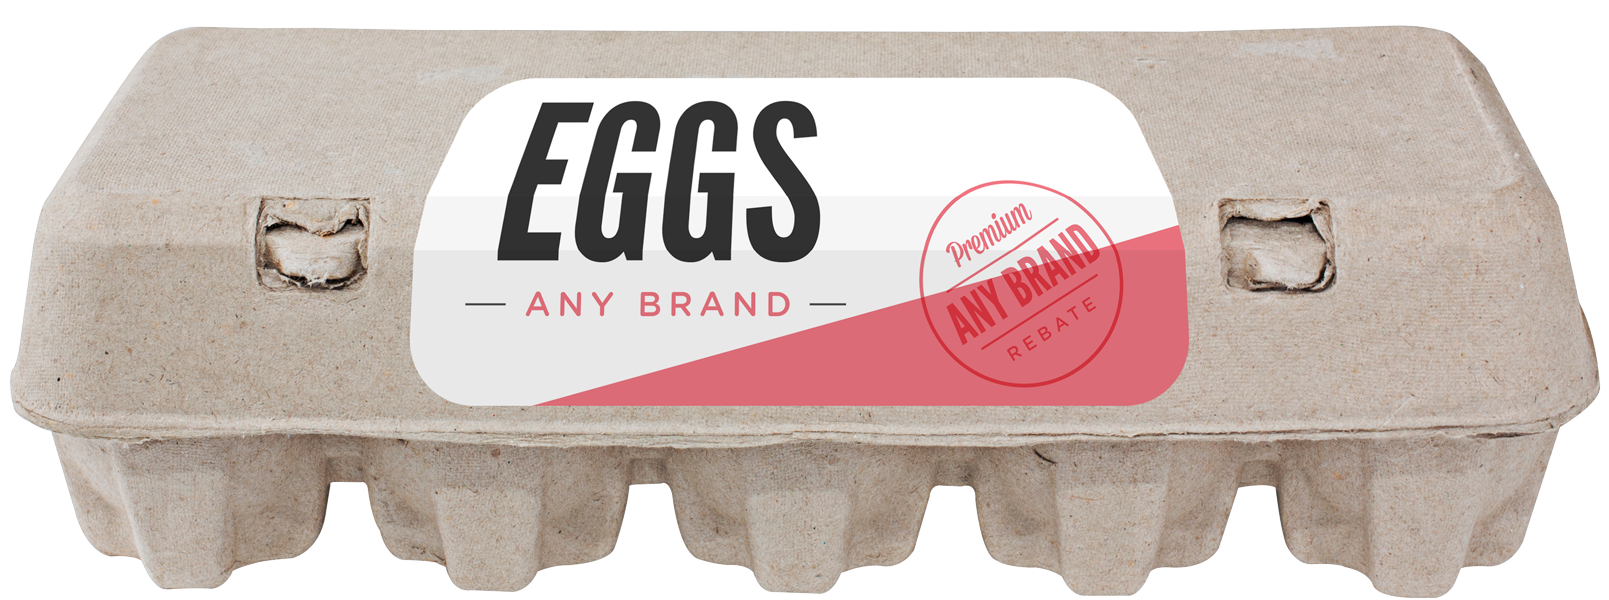 One Dozen Eggs - Any Brand